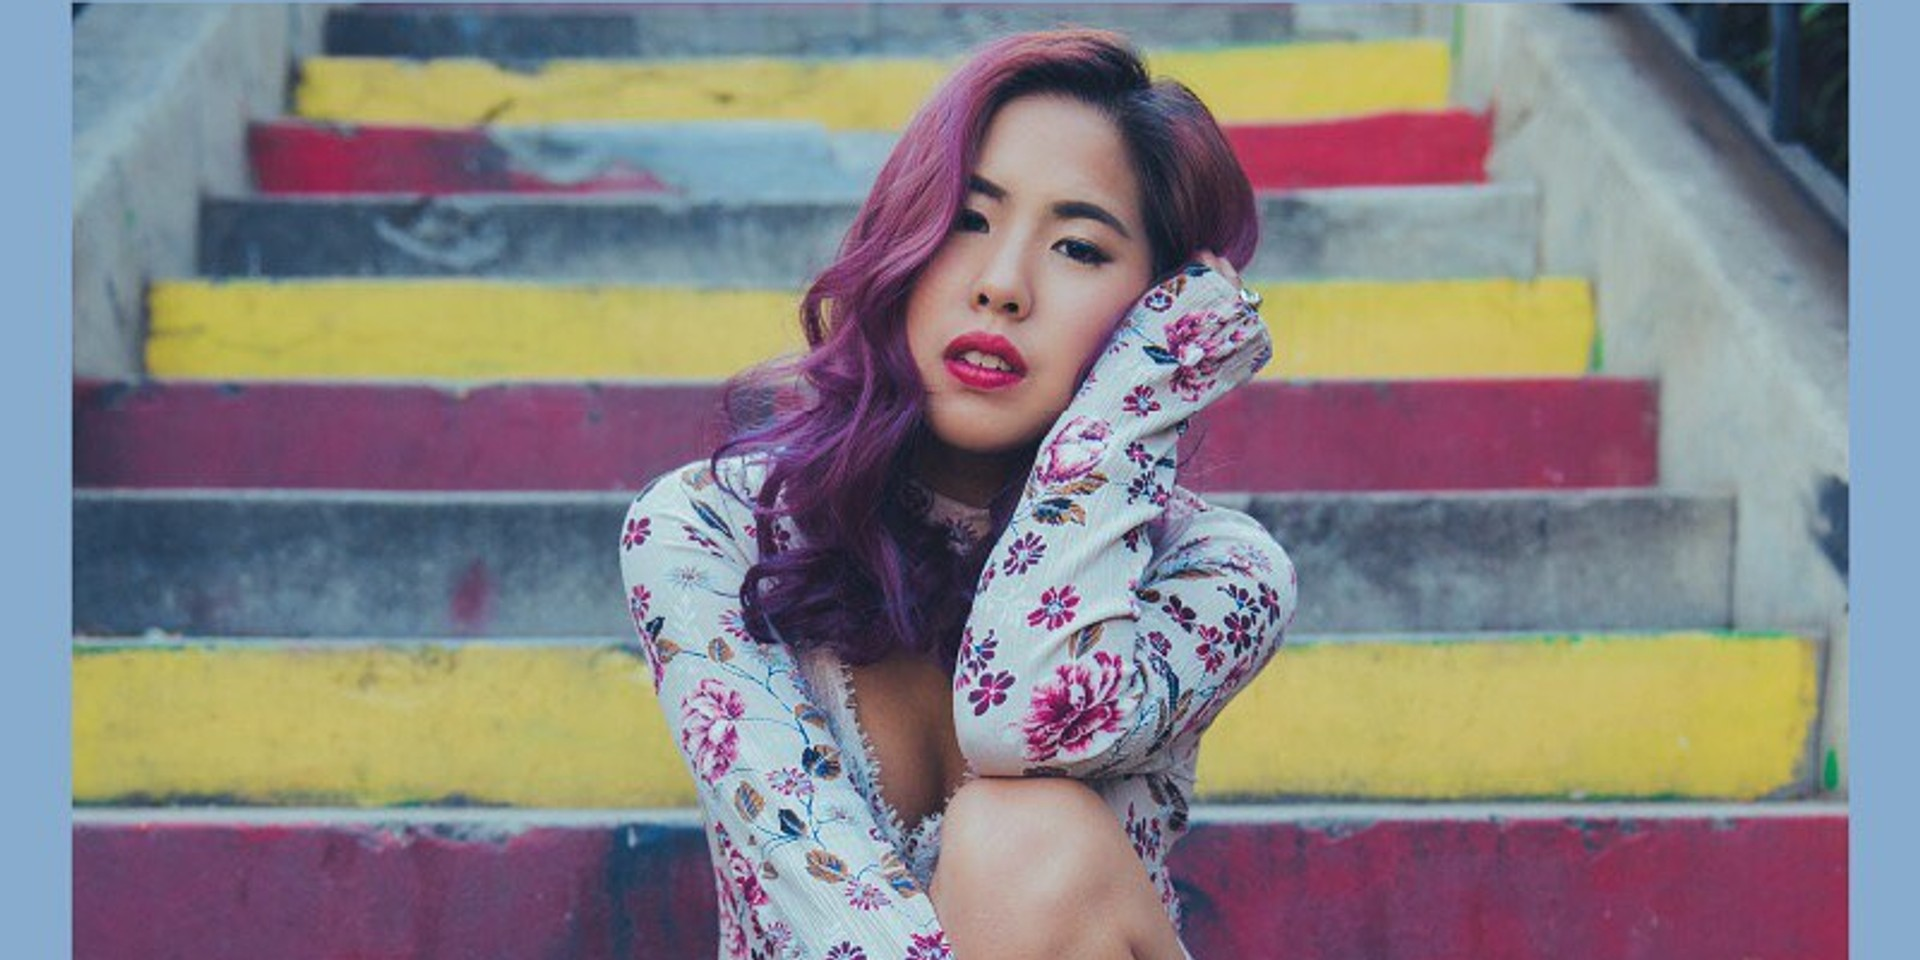 Haneri talks about her new single, her journey leading up to it, and more